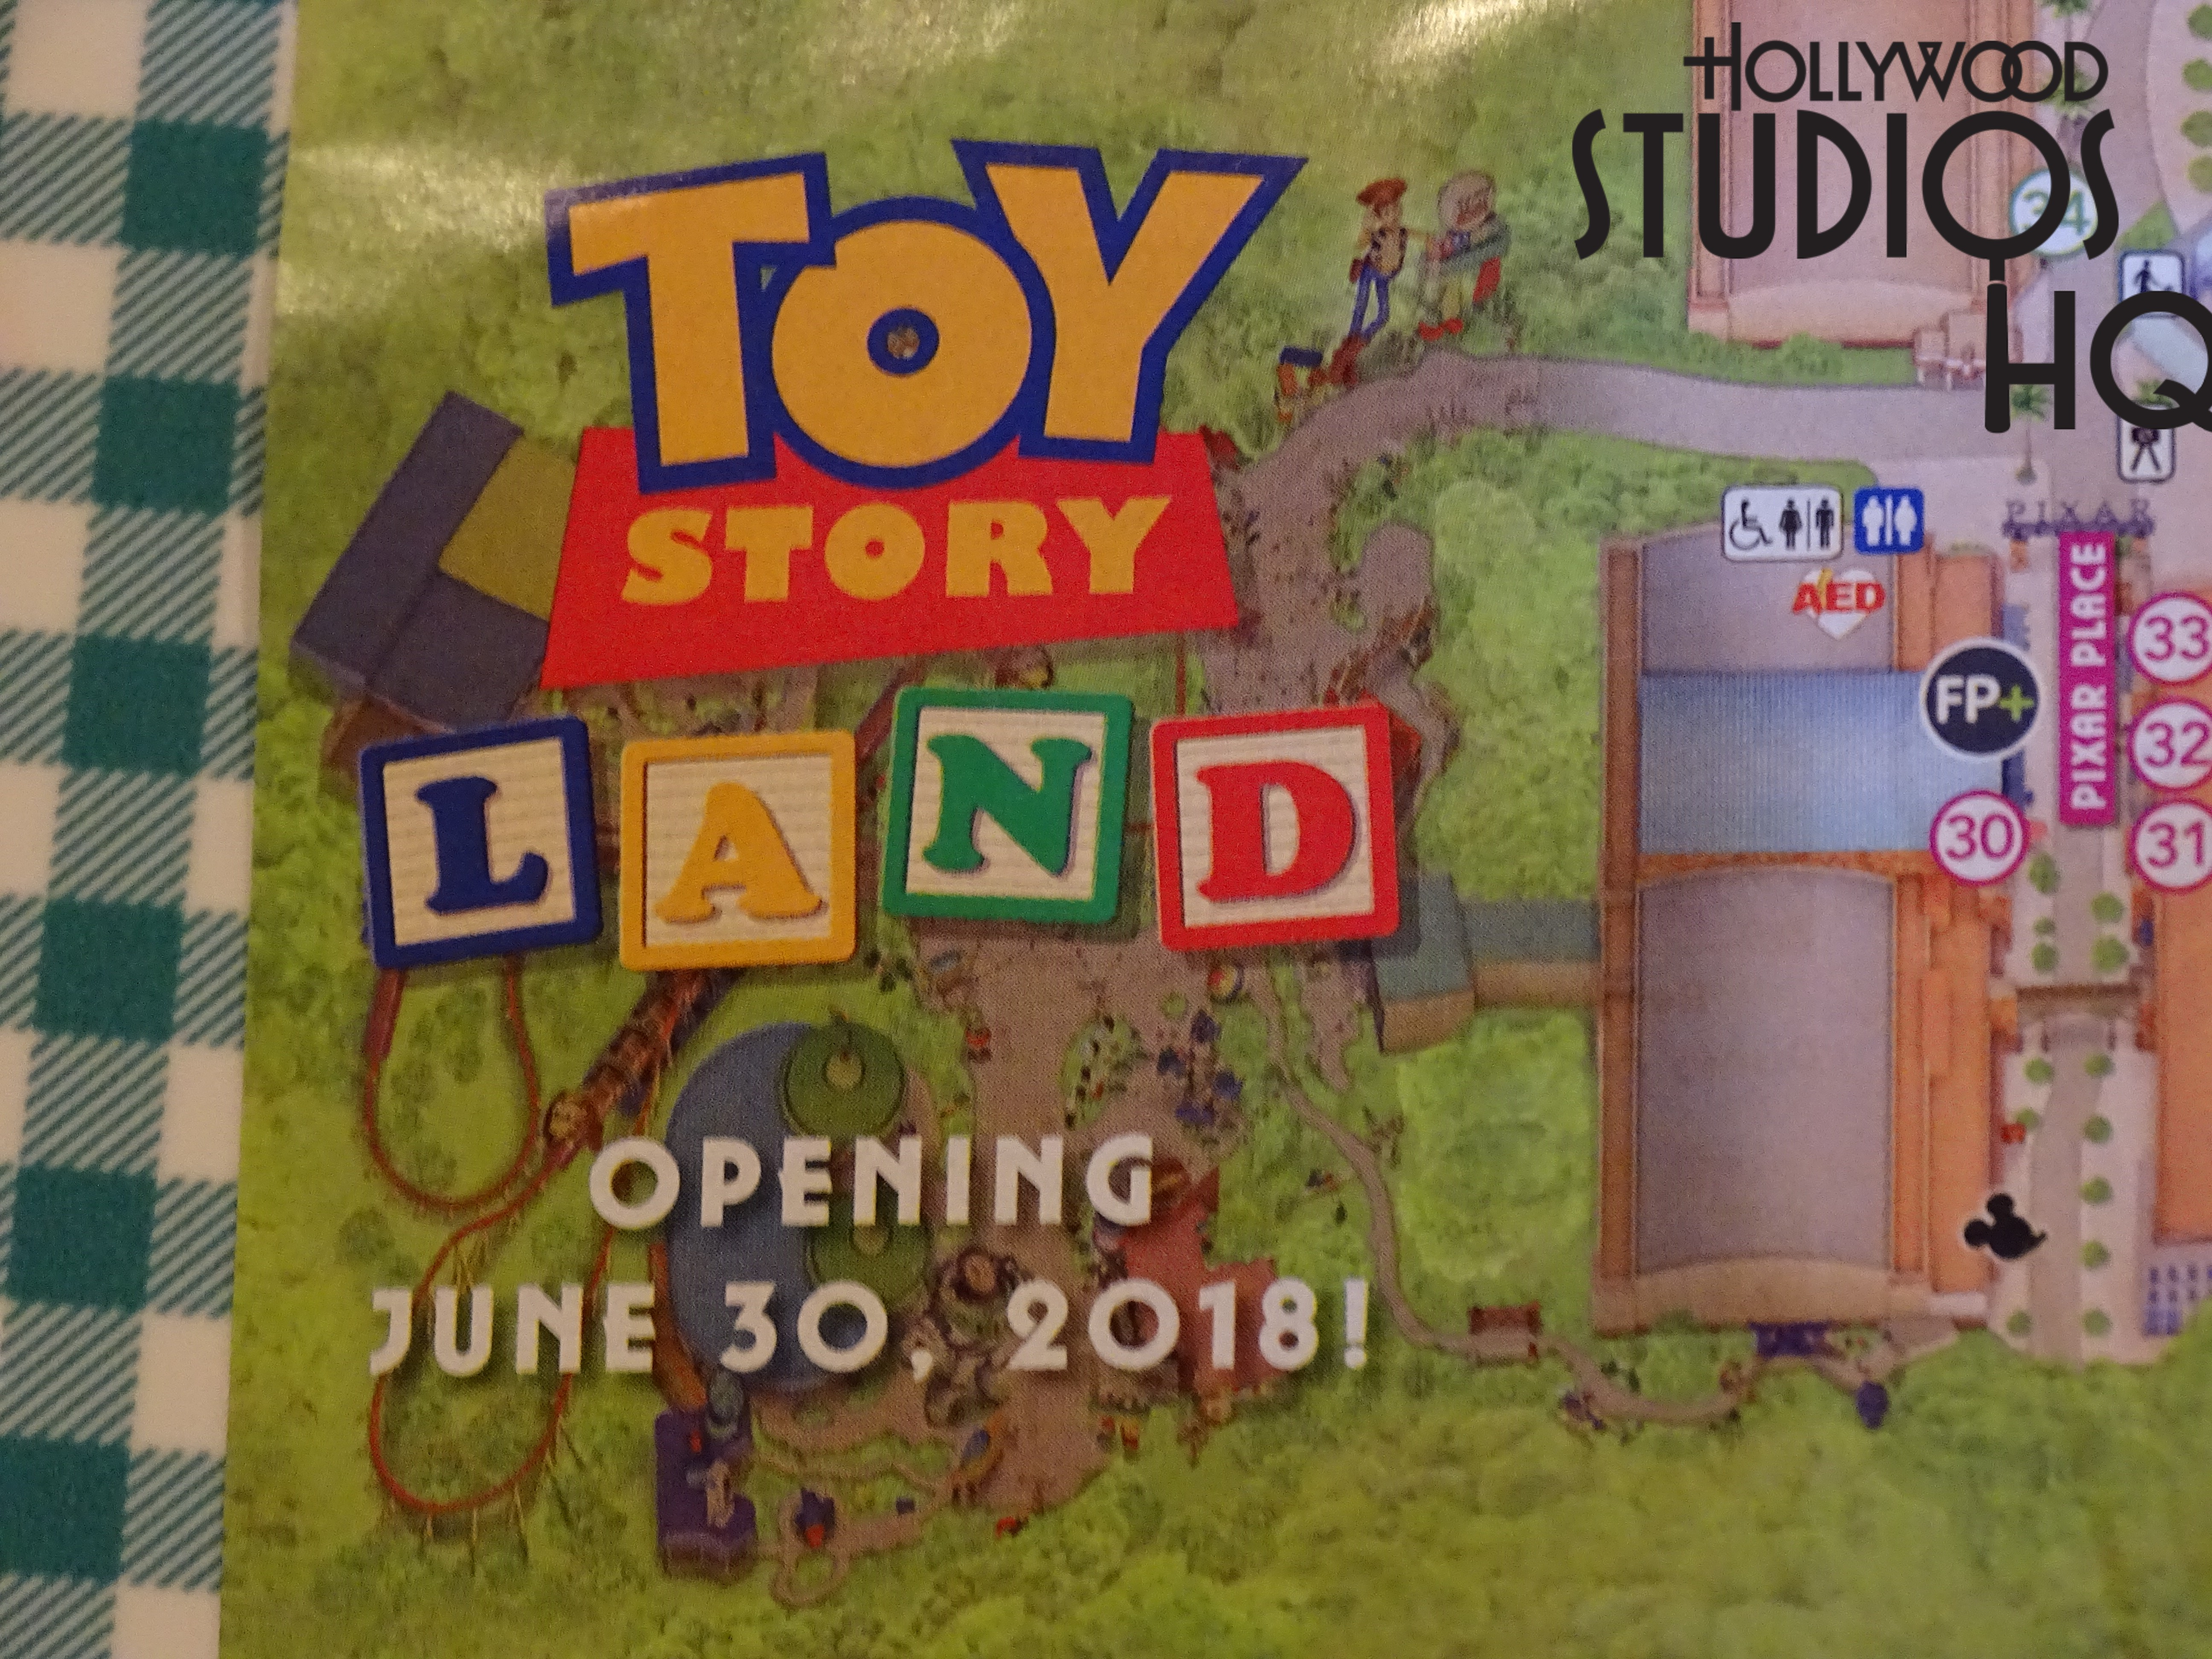 Heads up regarding the soon to open Toy Story Land. Two existing buildings (Toy Story Midway Mania and Walt Disney Presents) have a new fresh coat of paint. Also the longstanding Soundstage 3 logo on the side of Toy Story Midway Mania is now gone. The latest Park maps available contain a small description inside of the new Toy Story Land.